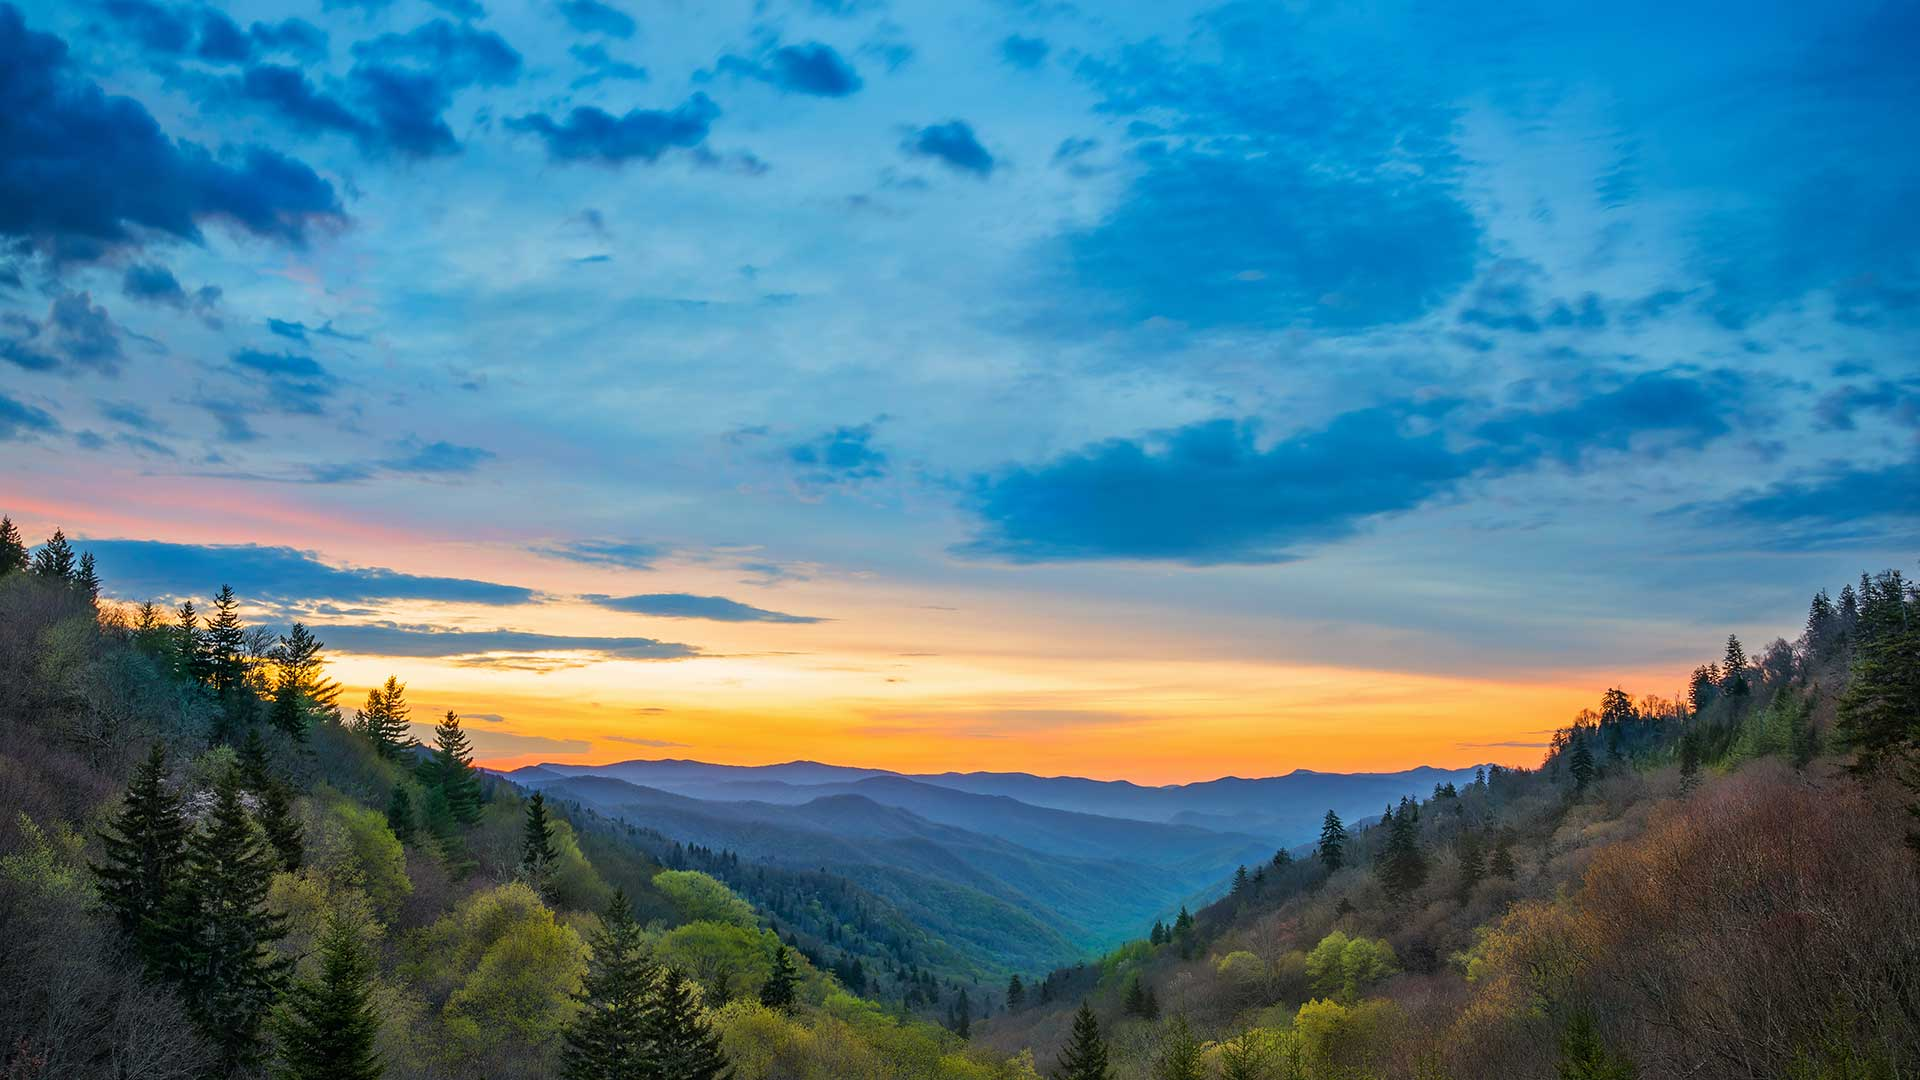 Panorama to illustrate dating in cherokee